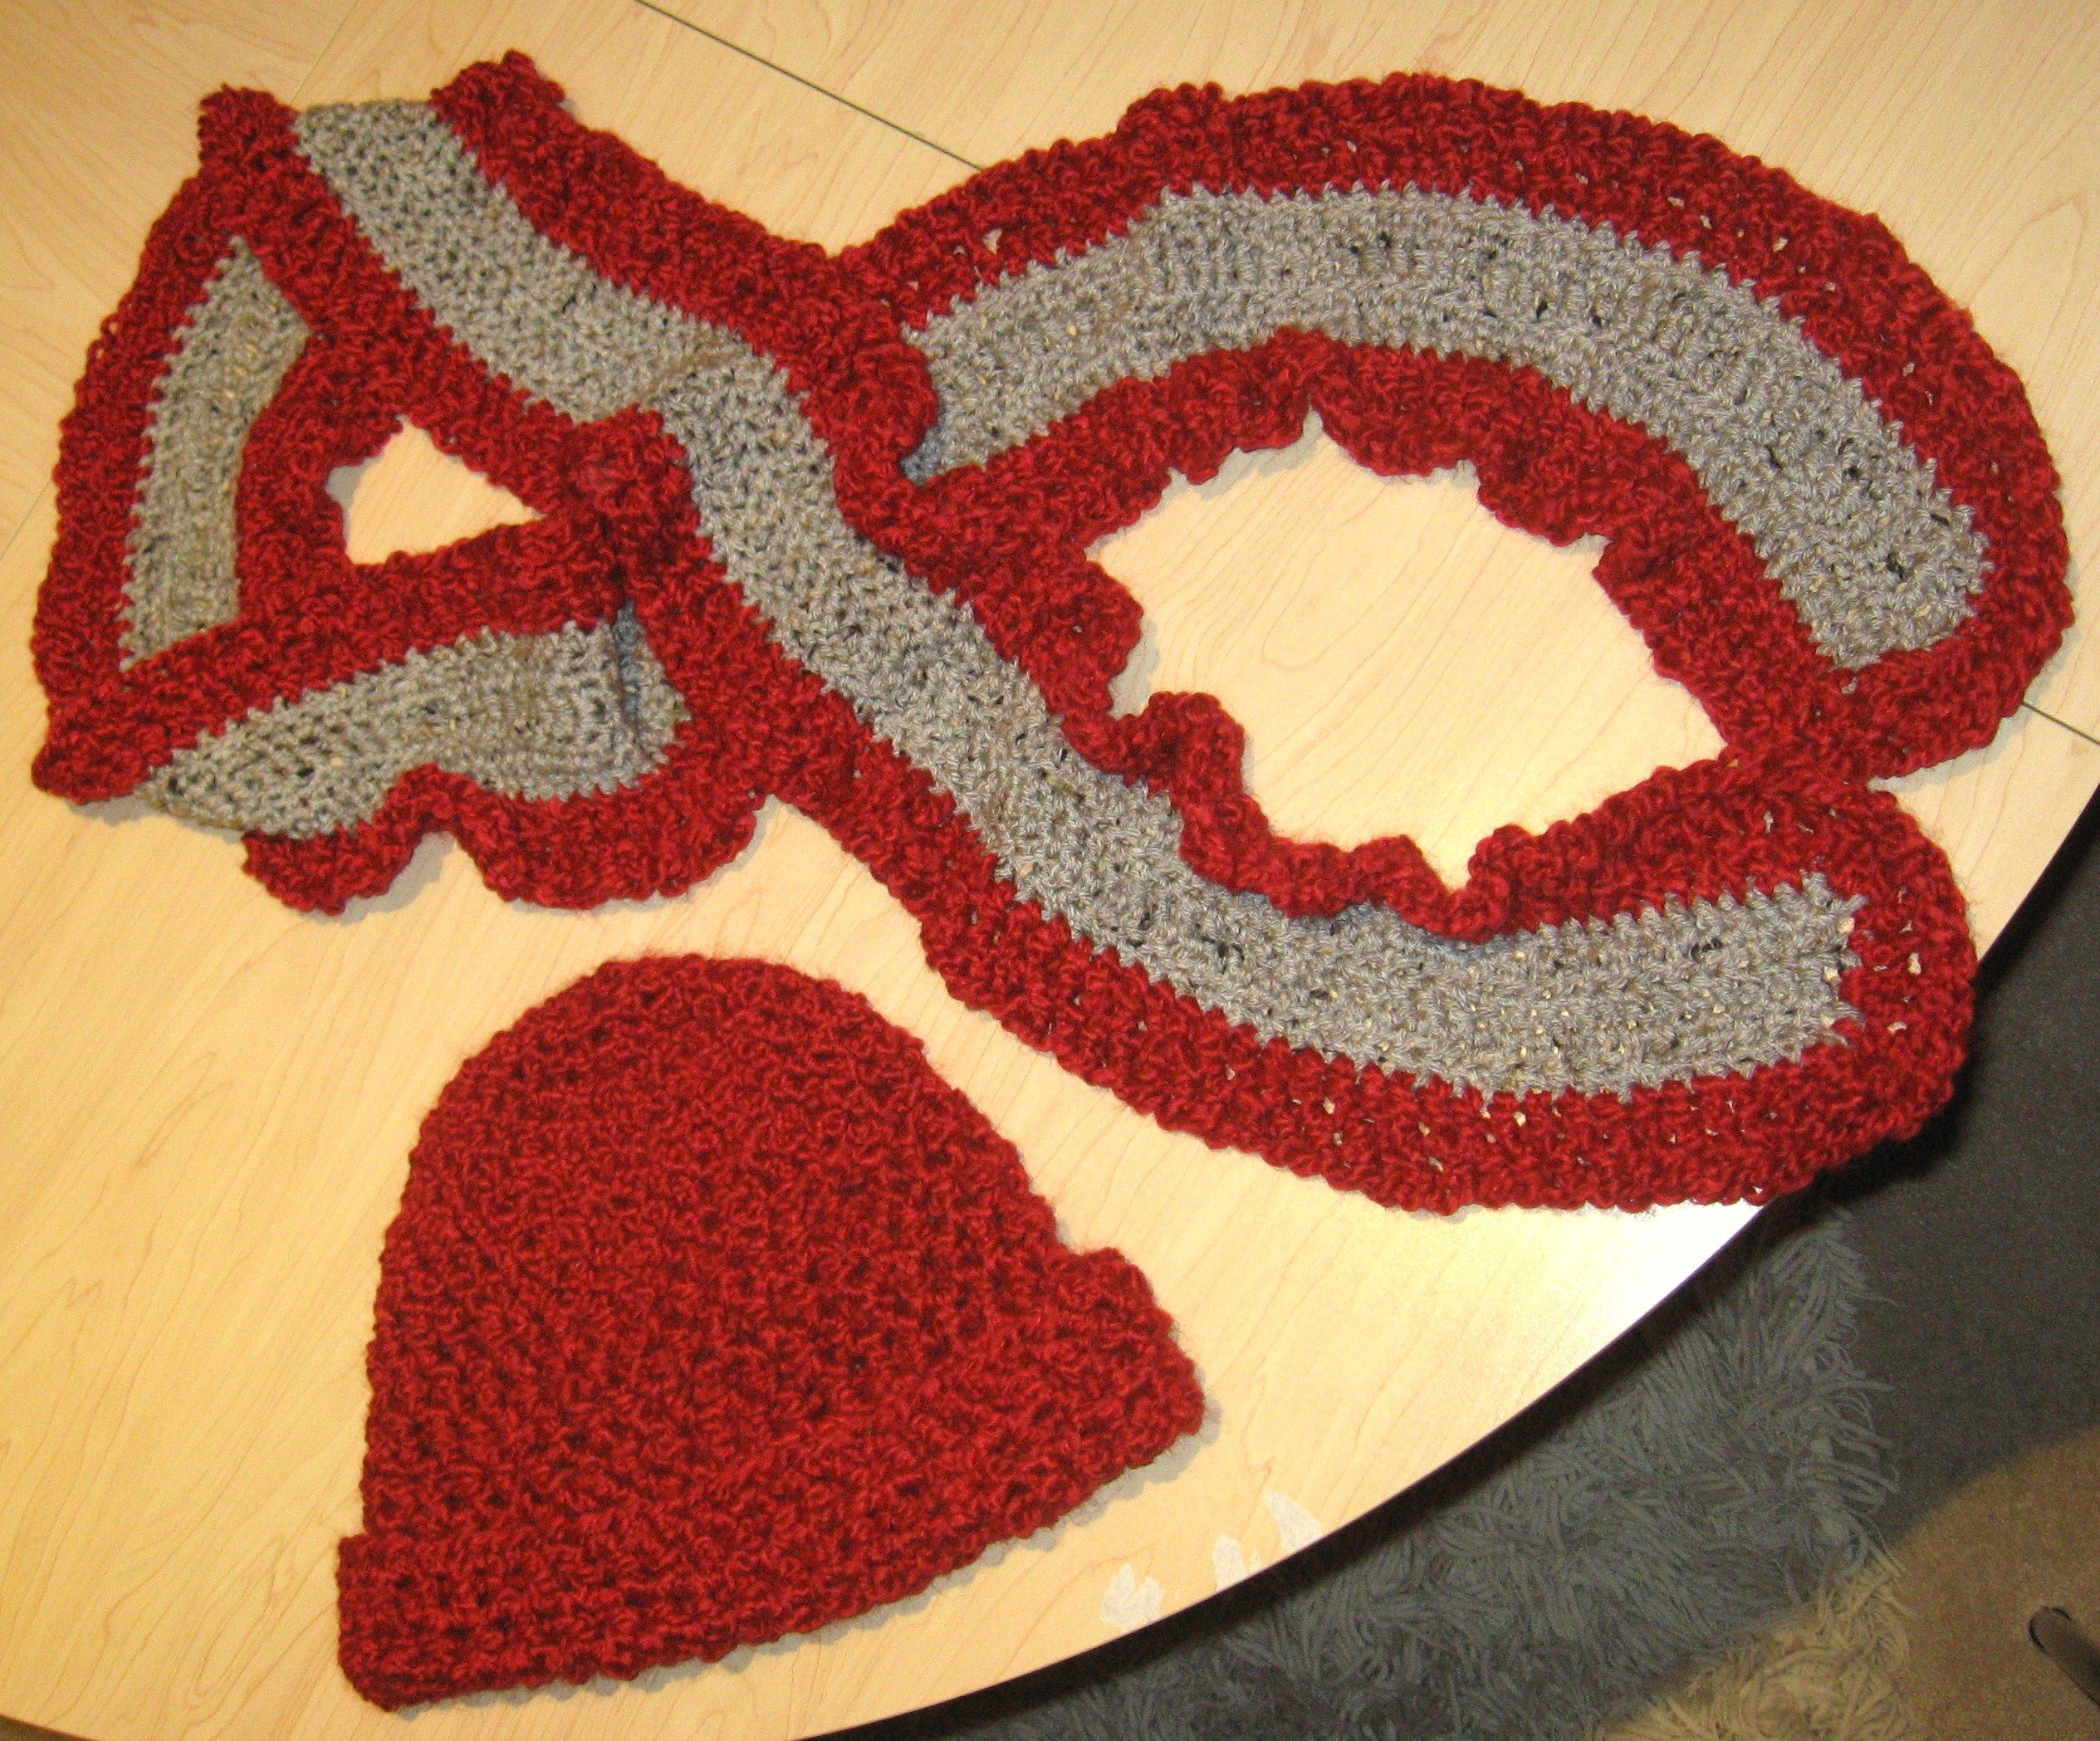 Burgundy and grey hat and scarf set. Would go nicely with a grey coat.